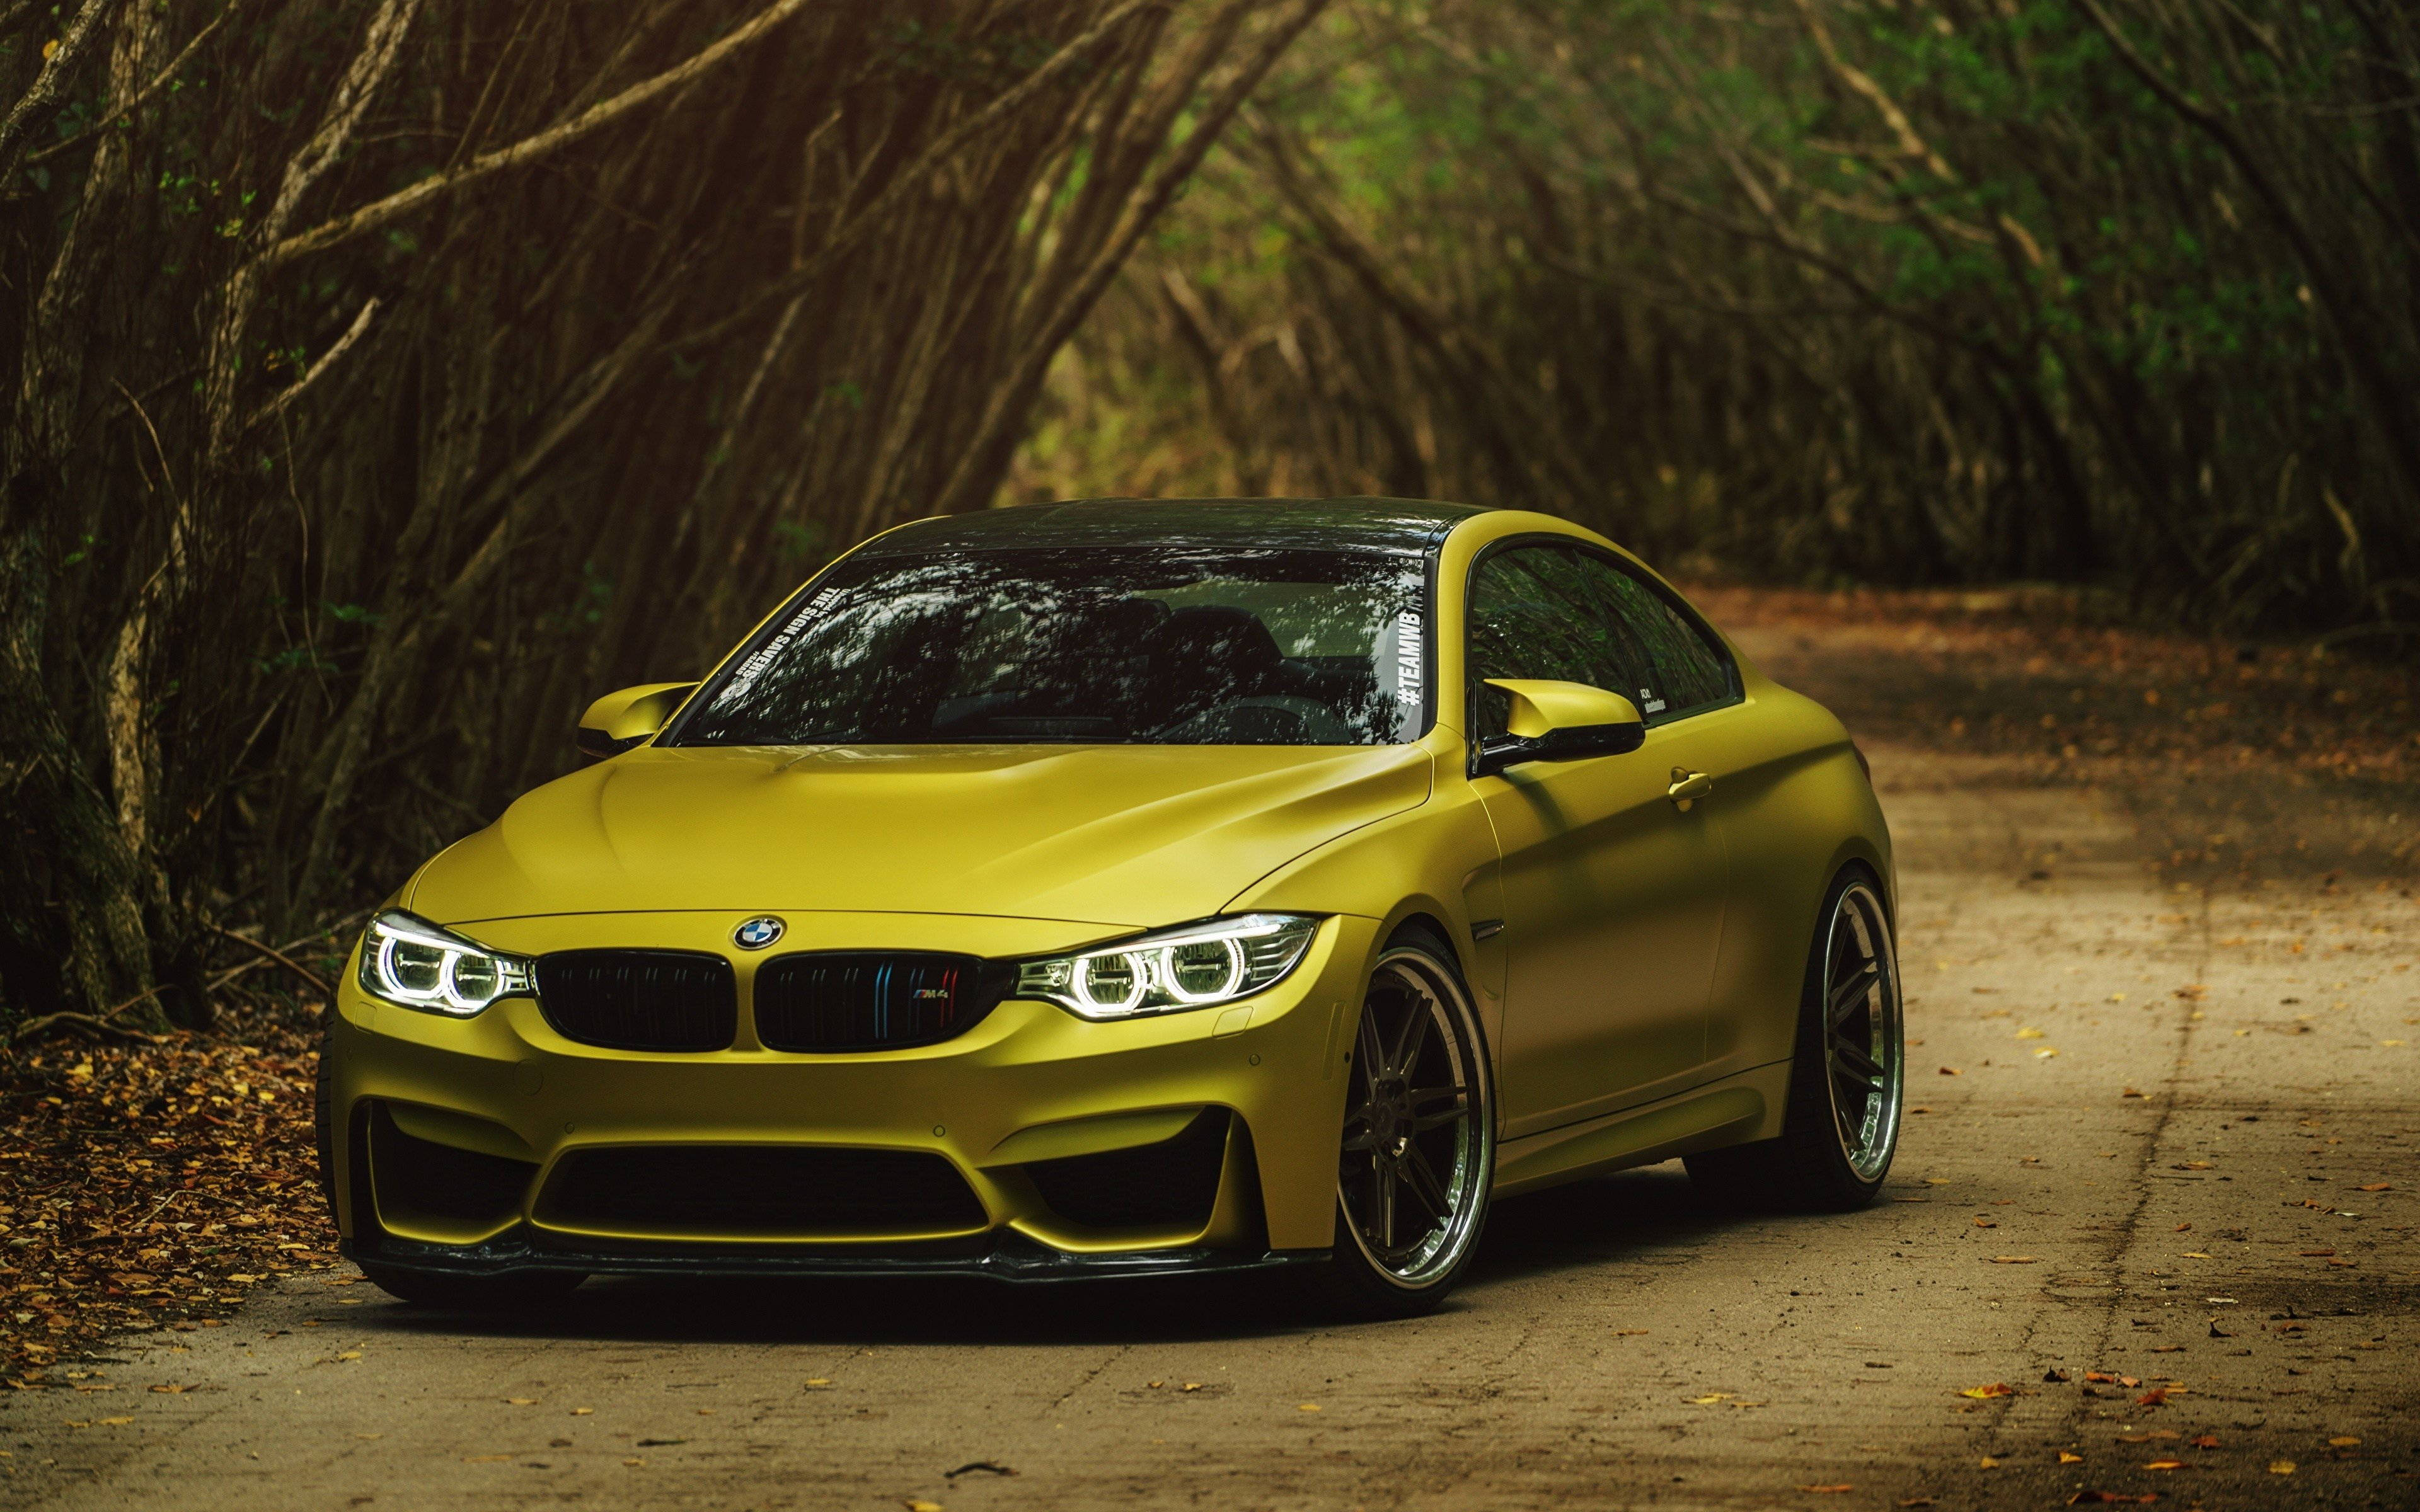 Latest Wallpapers Bmw Gold M4 Coupe Austin Cars Front 3840X2400 Free Download